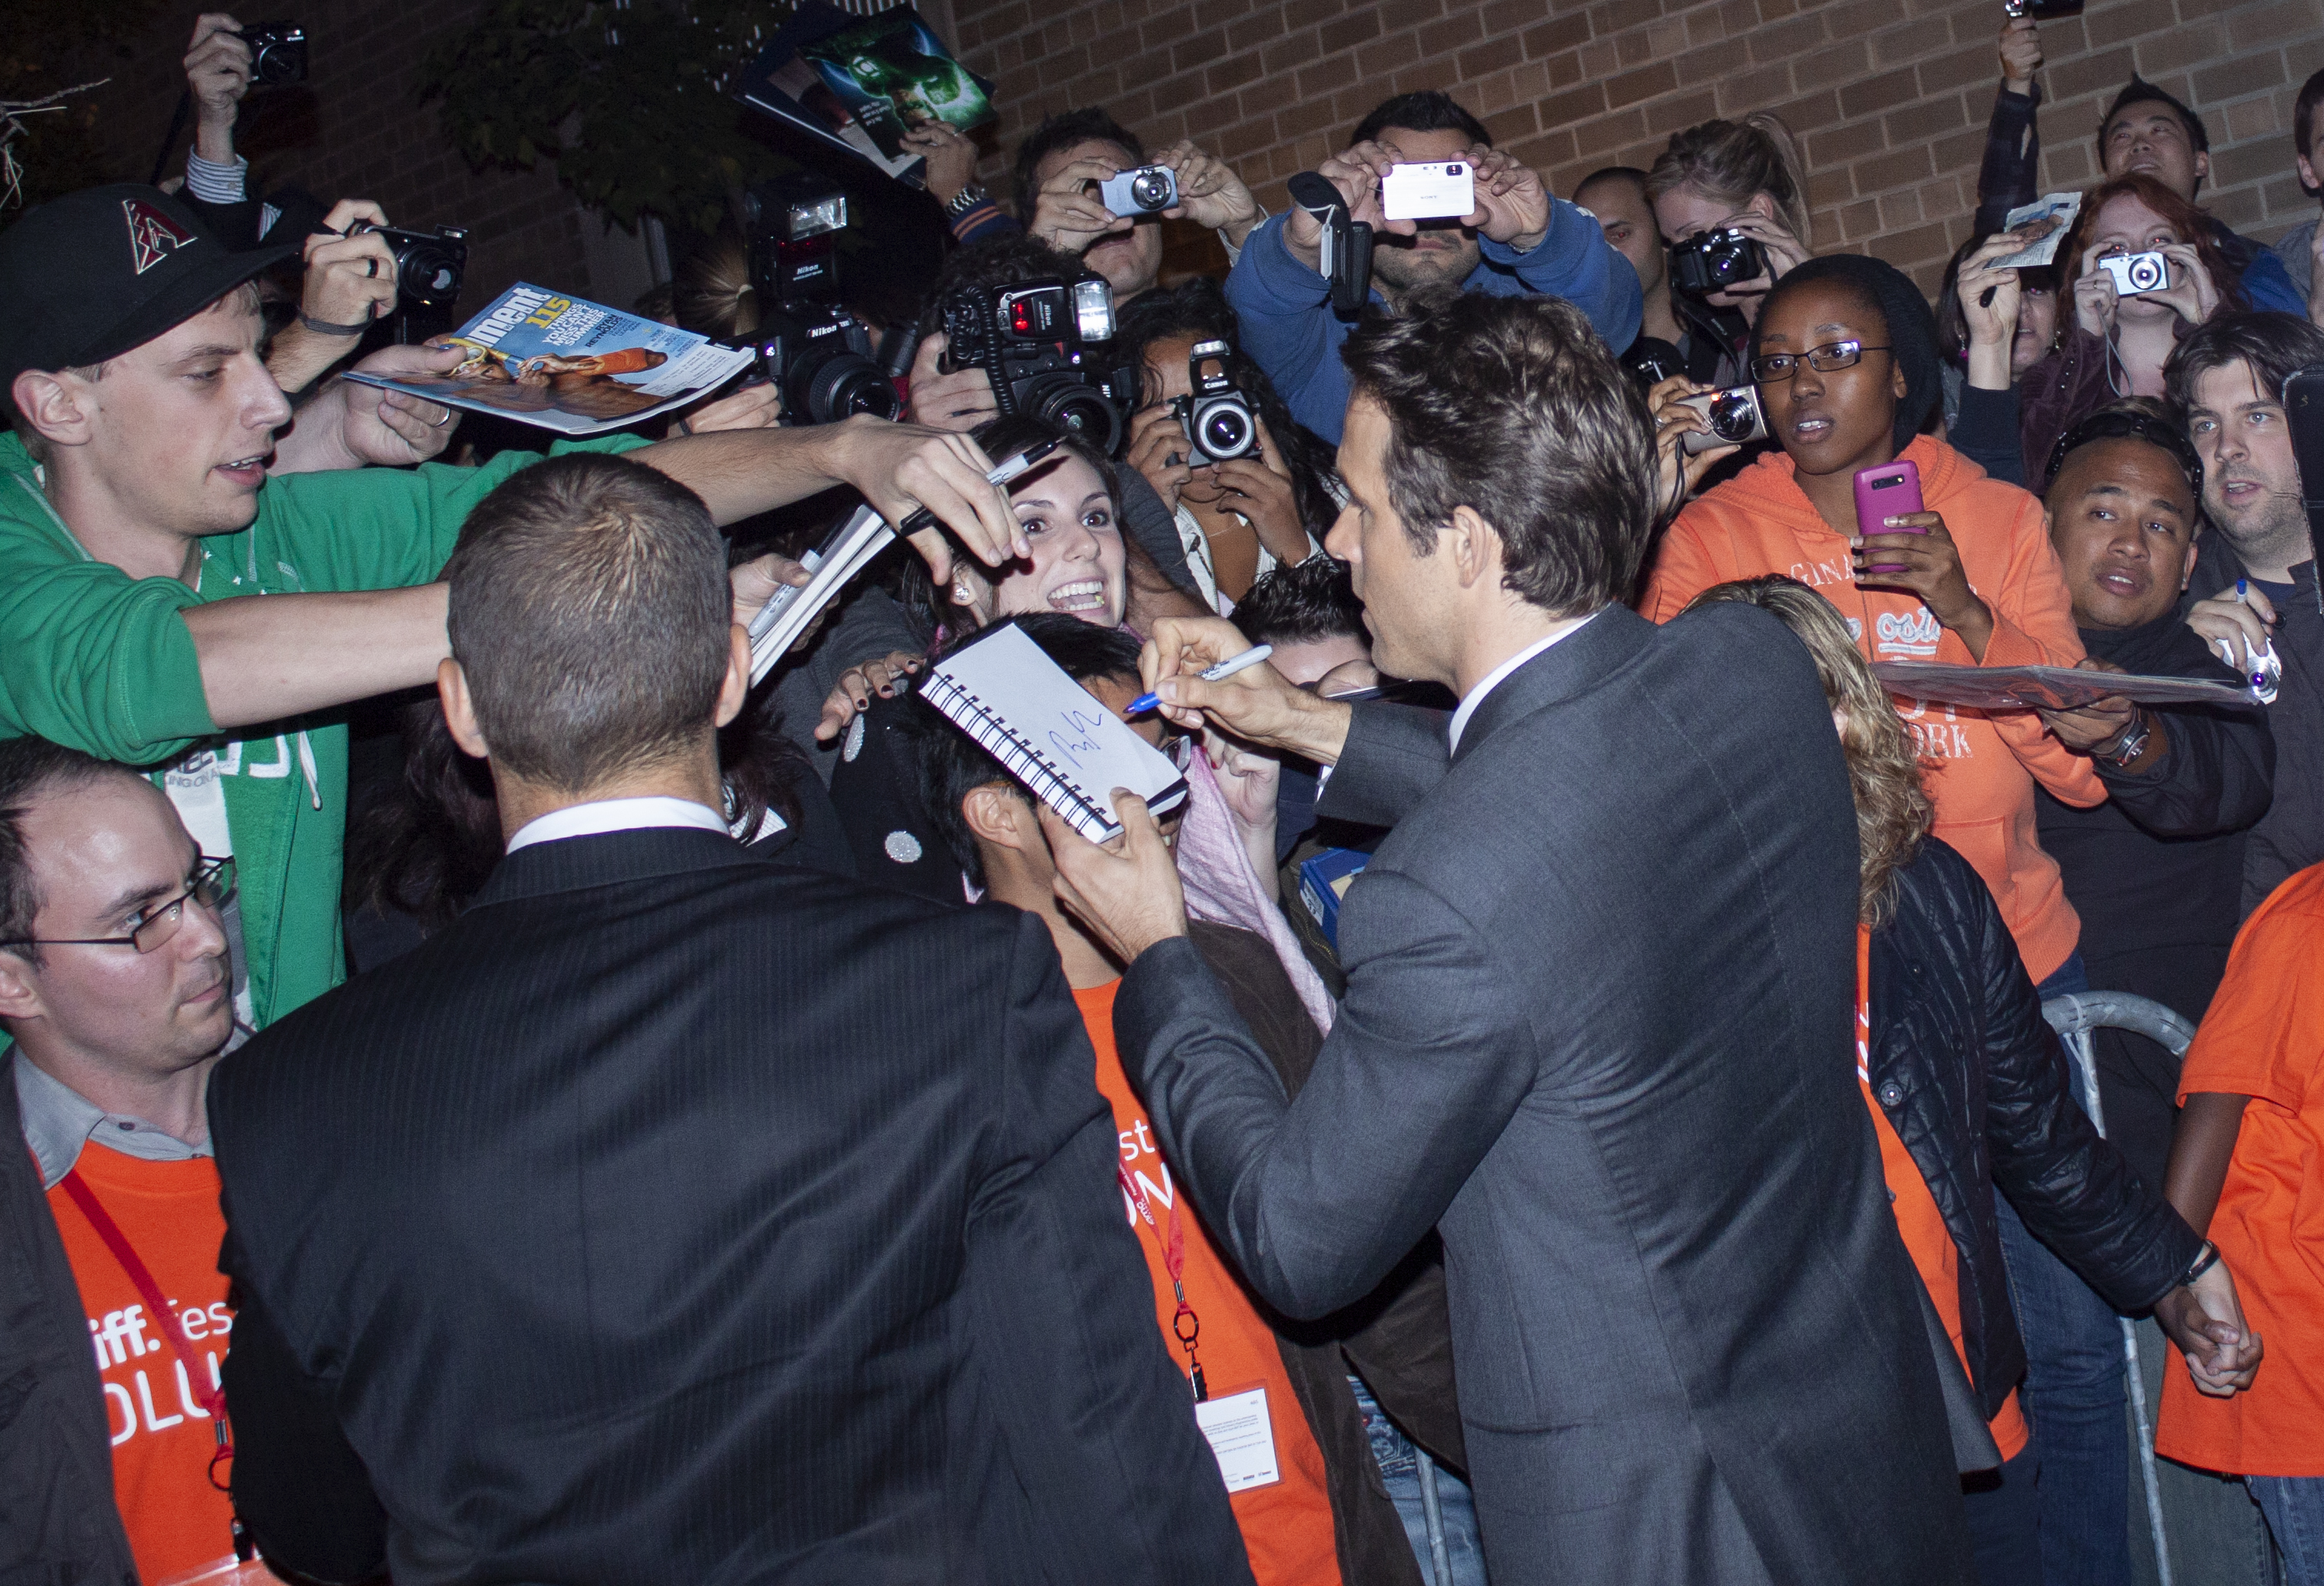 Ryan Reynolds signs autographs outside of Ryerson Theatre in Toronto during the Toronto International Film Festival on Sept. 14, 2010. (Steve Silva)